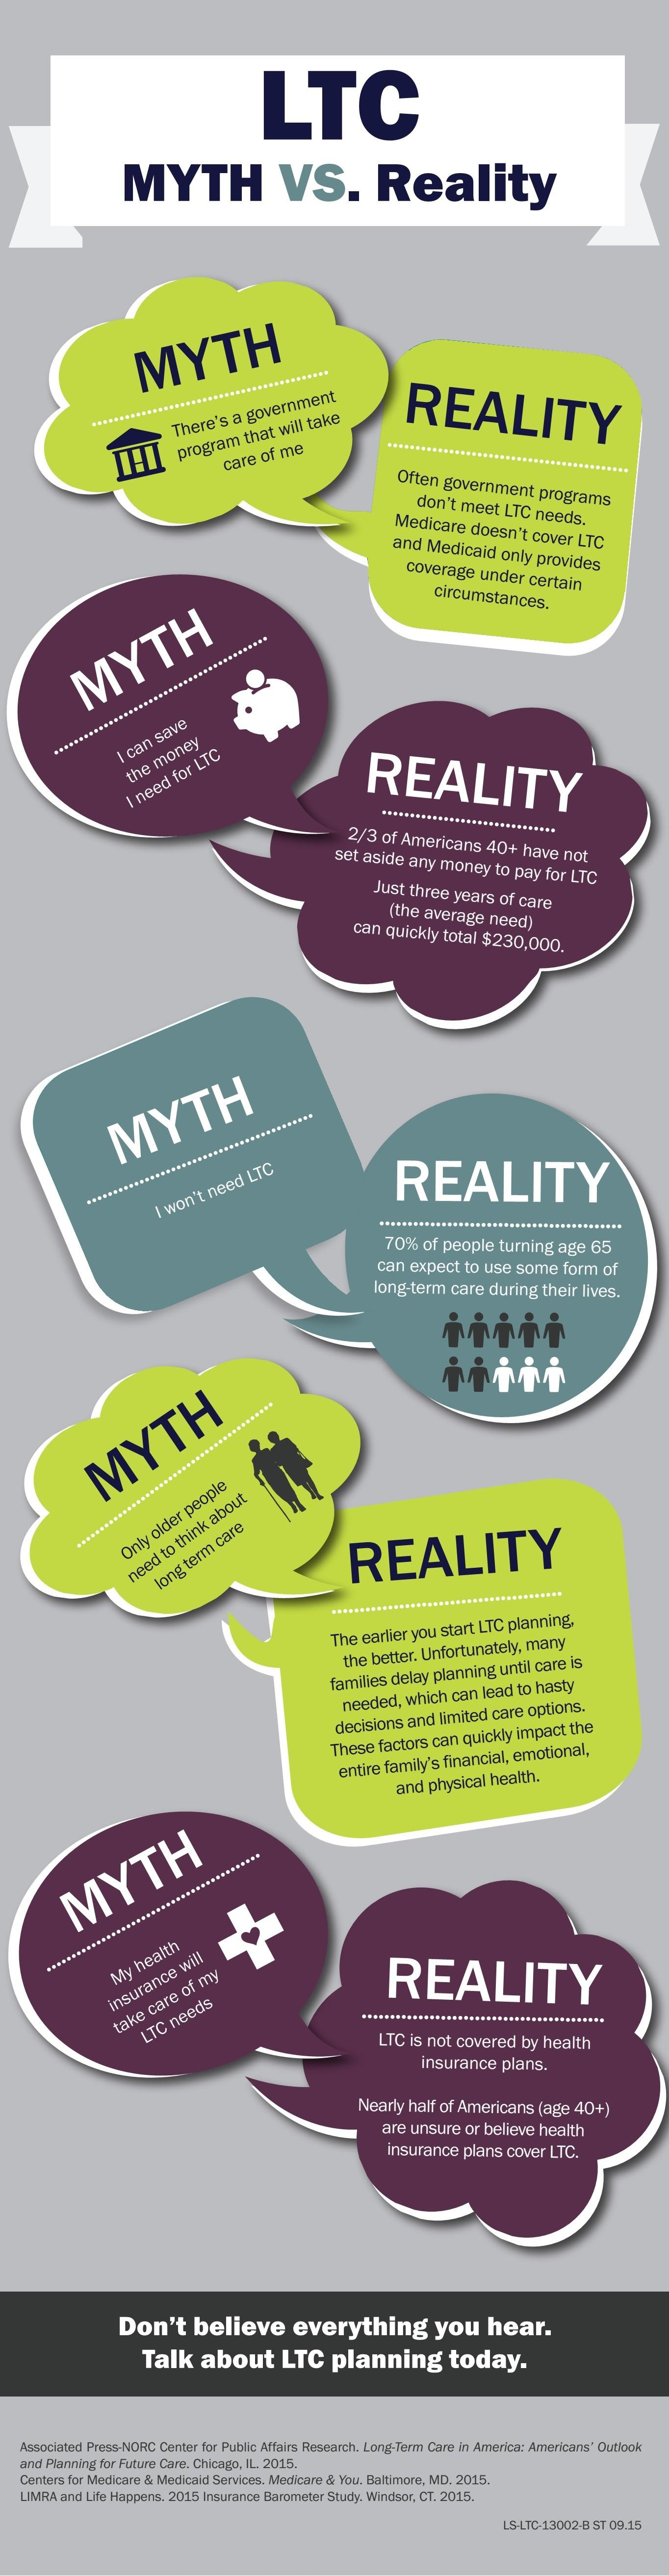 long-term-care-myth-vs-reality